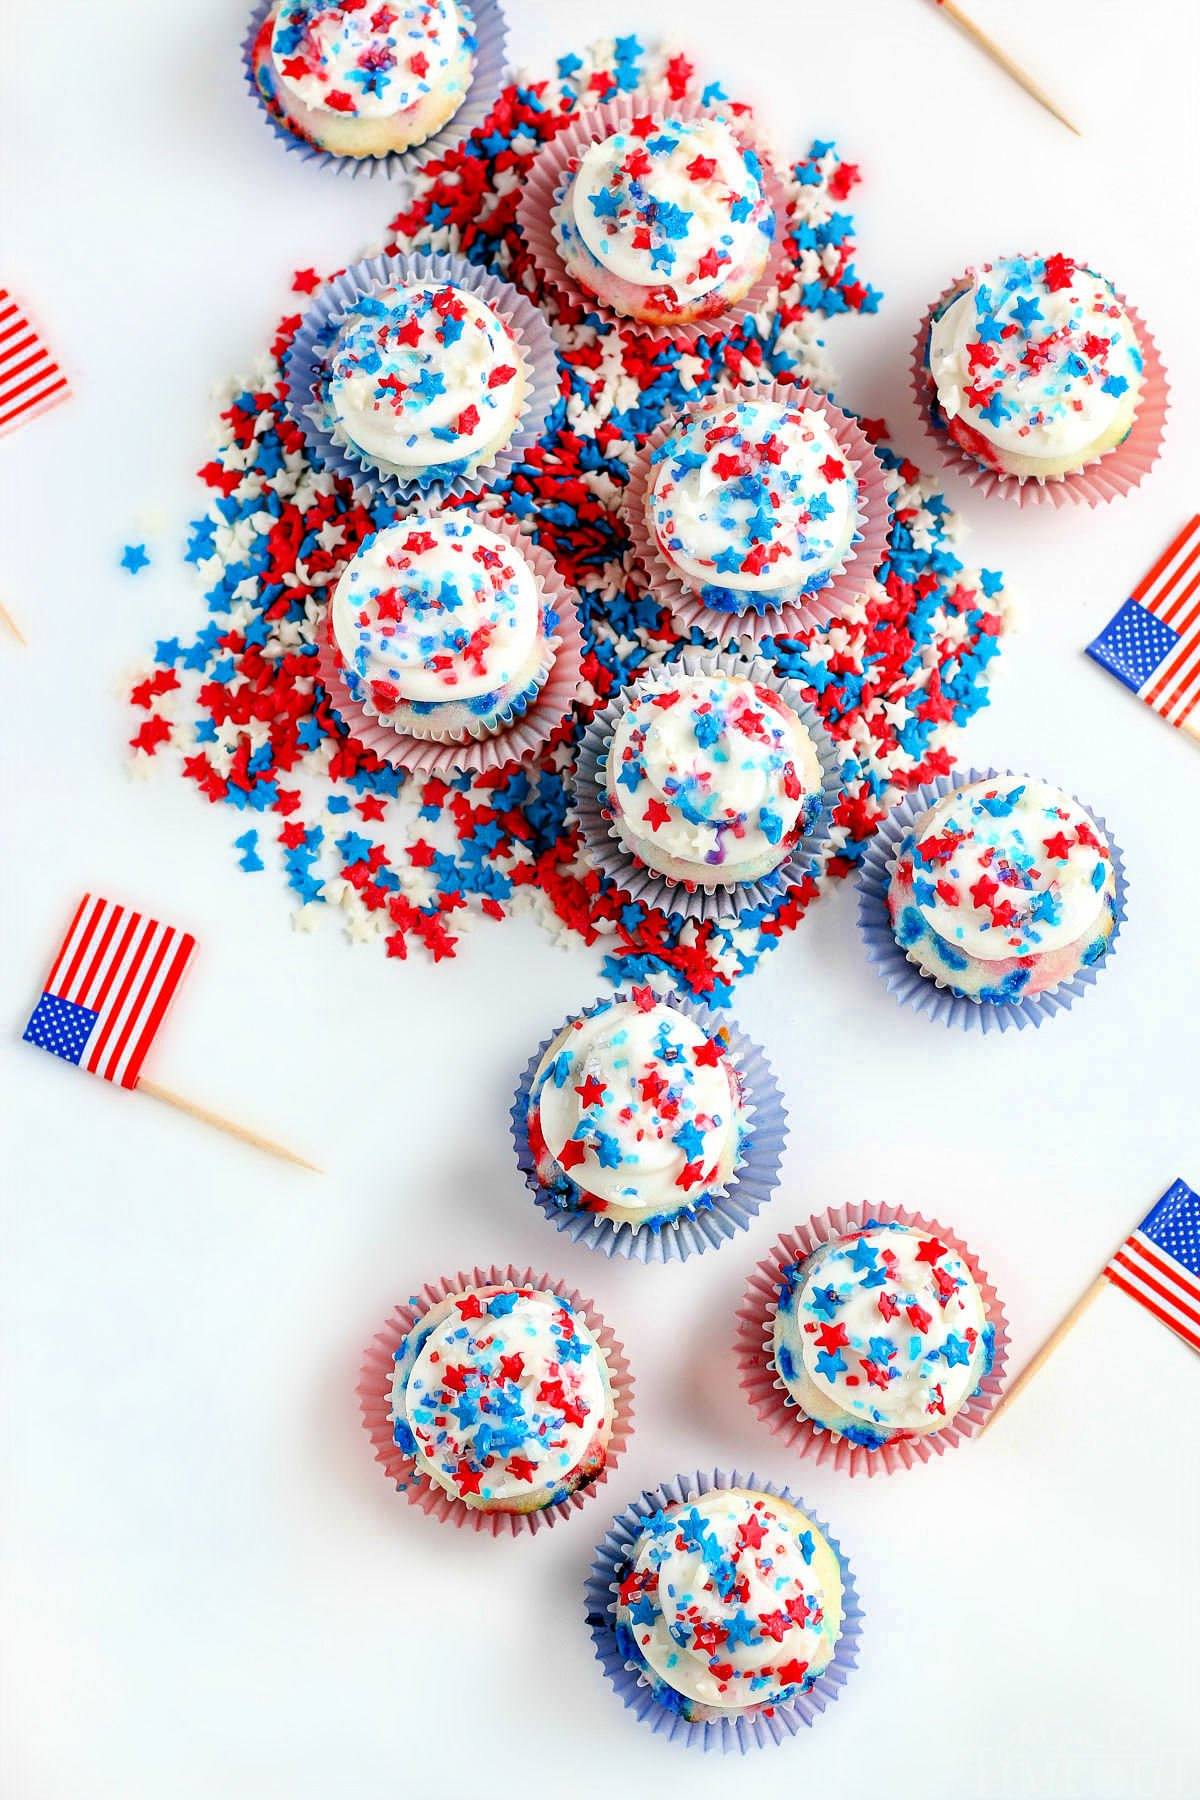 top down view of mini cupcakes decorated for 4th of july